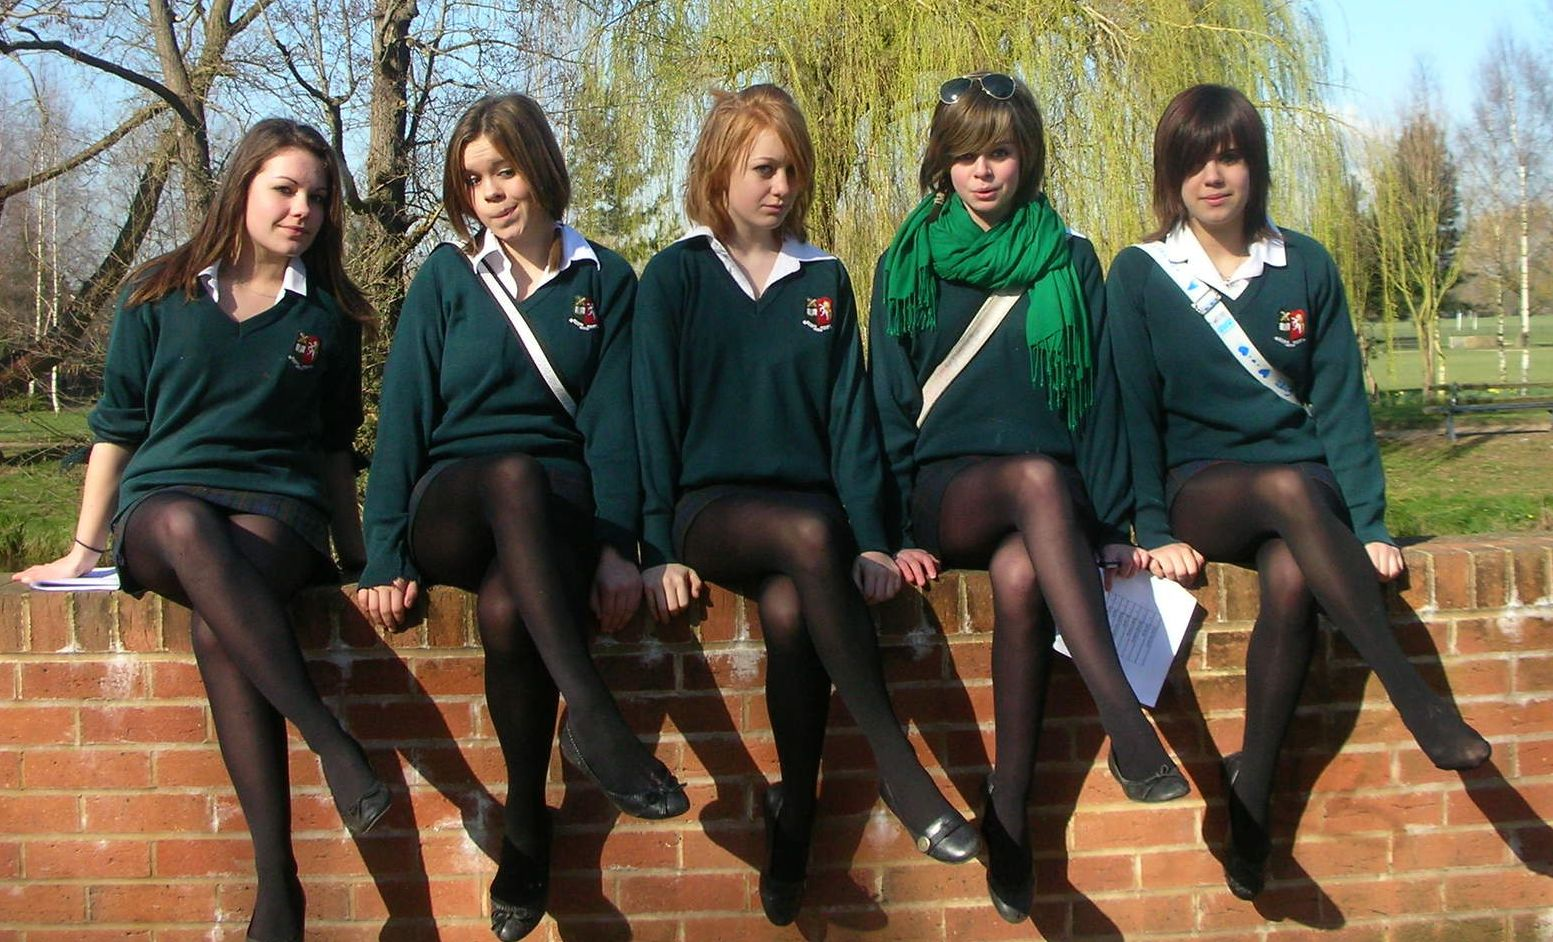 Photos of naked young schoolgirls porn lovers